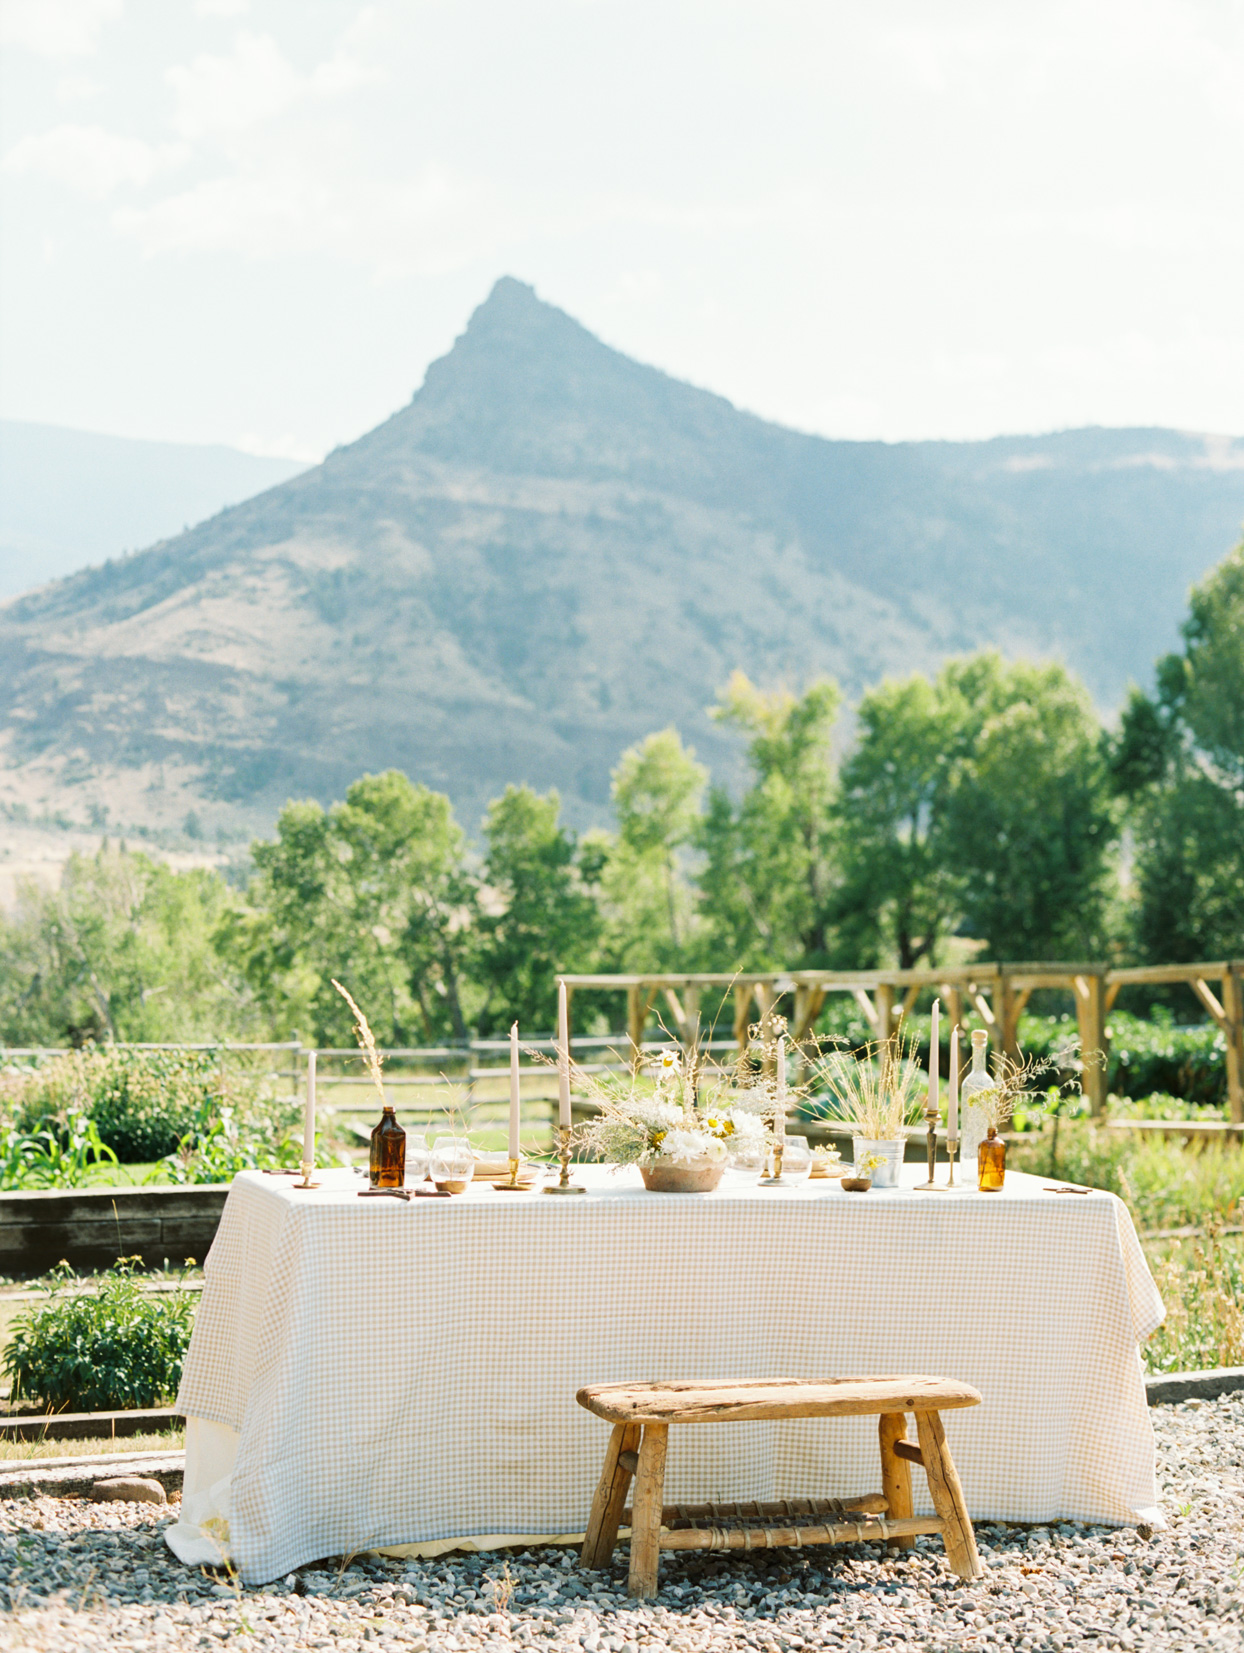 elegant rustic outdoor table with mountain view